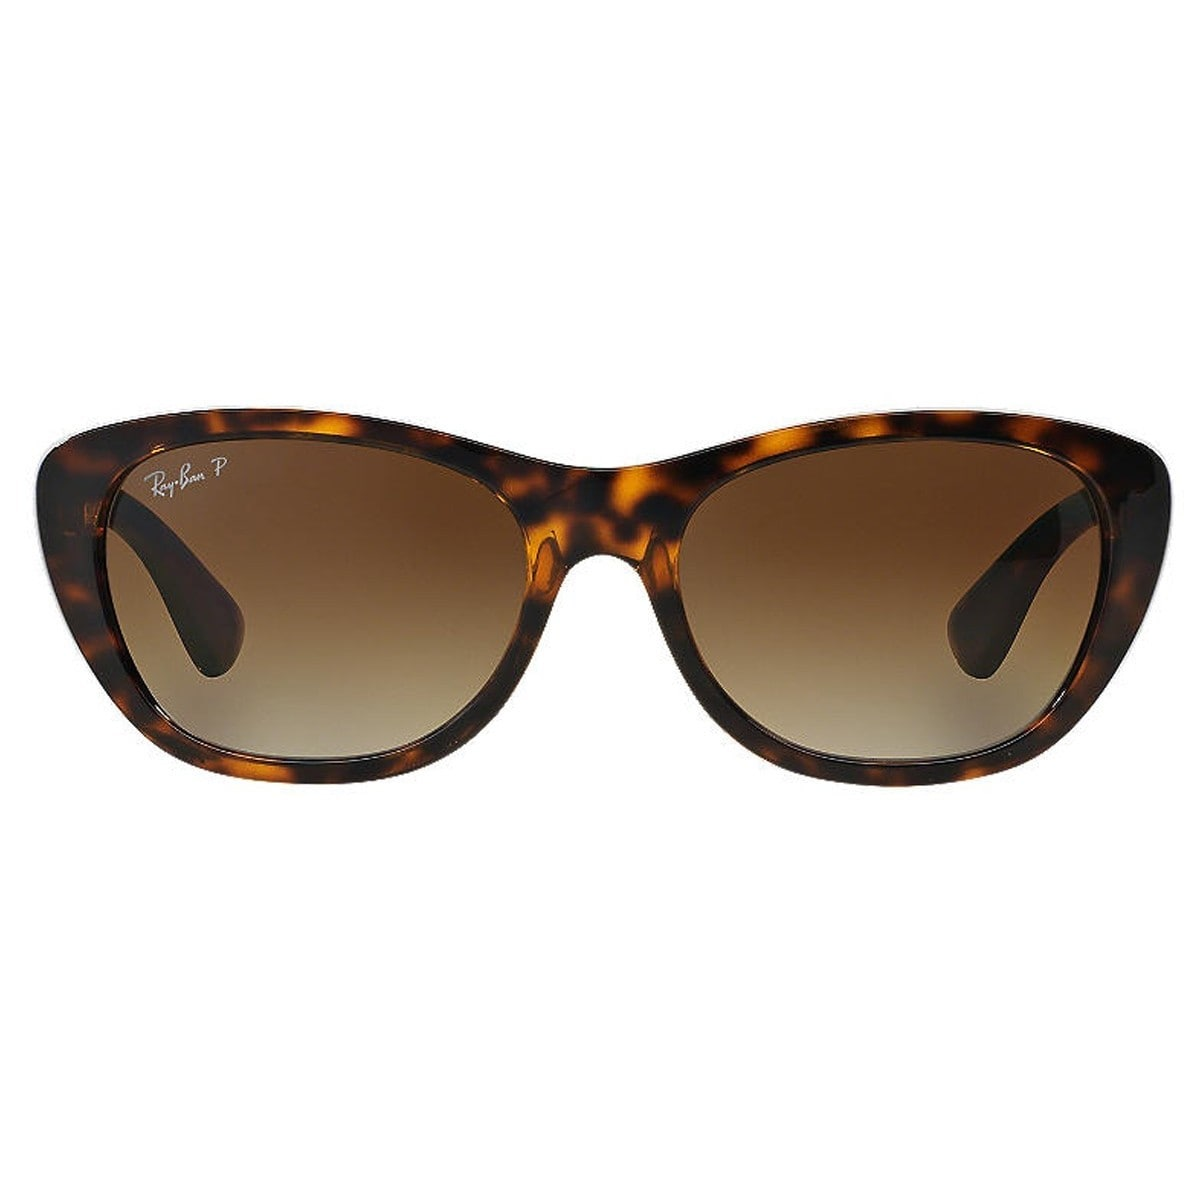 b0bf9cd681 Shop Ray-Ban RB4227 710 T5 Female Tortoise Frame Polarized Brown Gradient  55mm Lens Sunglasses - Free Shipping Today - Overstock - 11118533